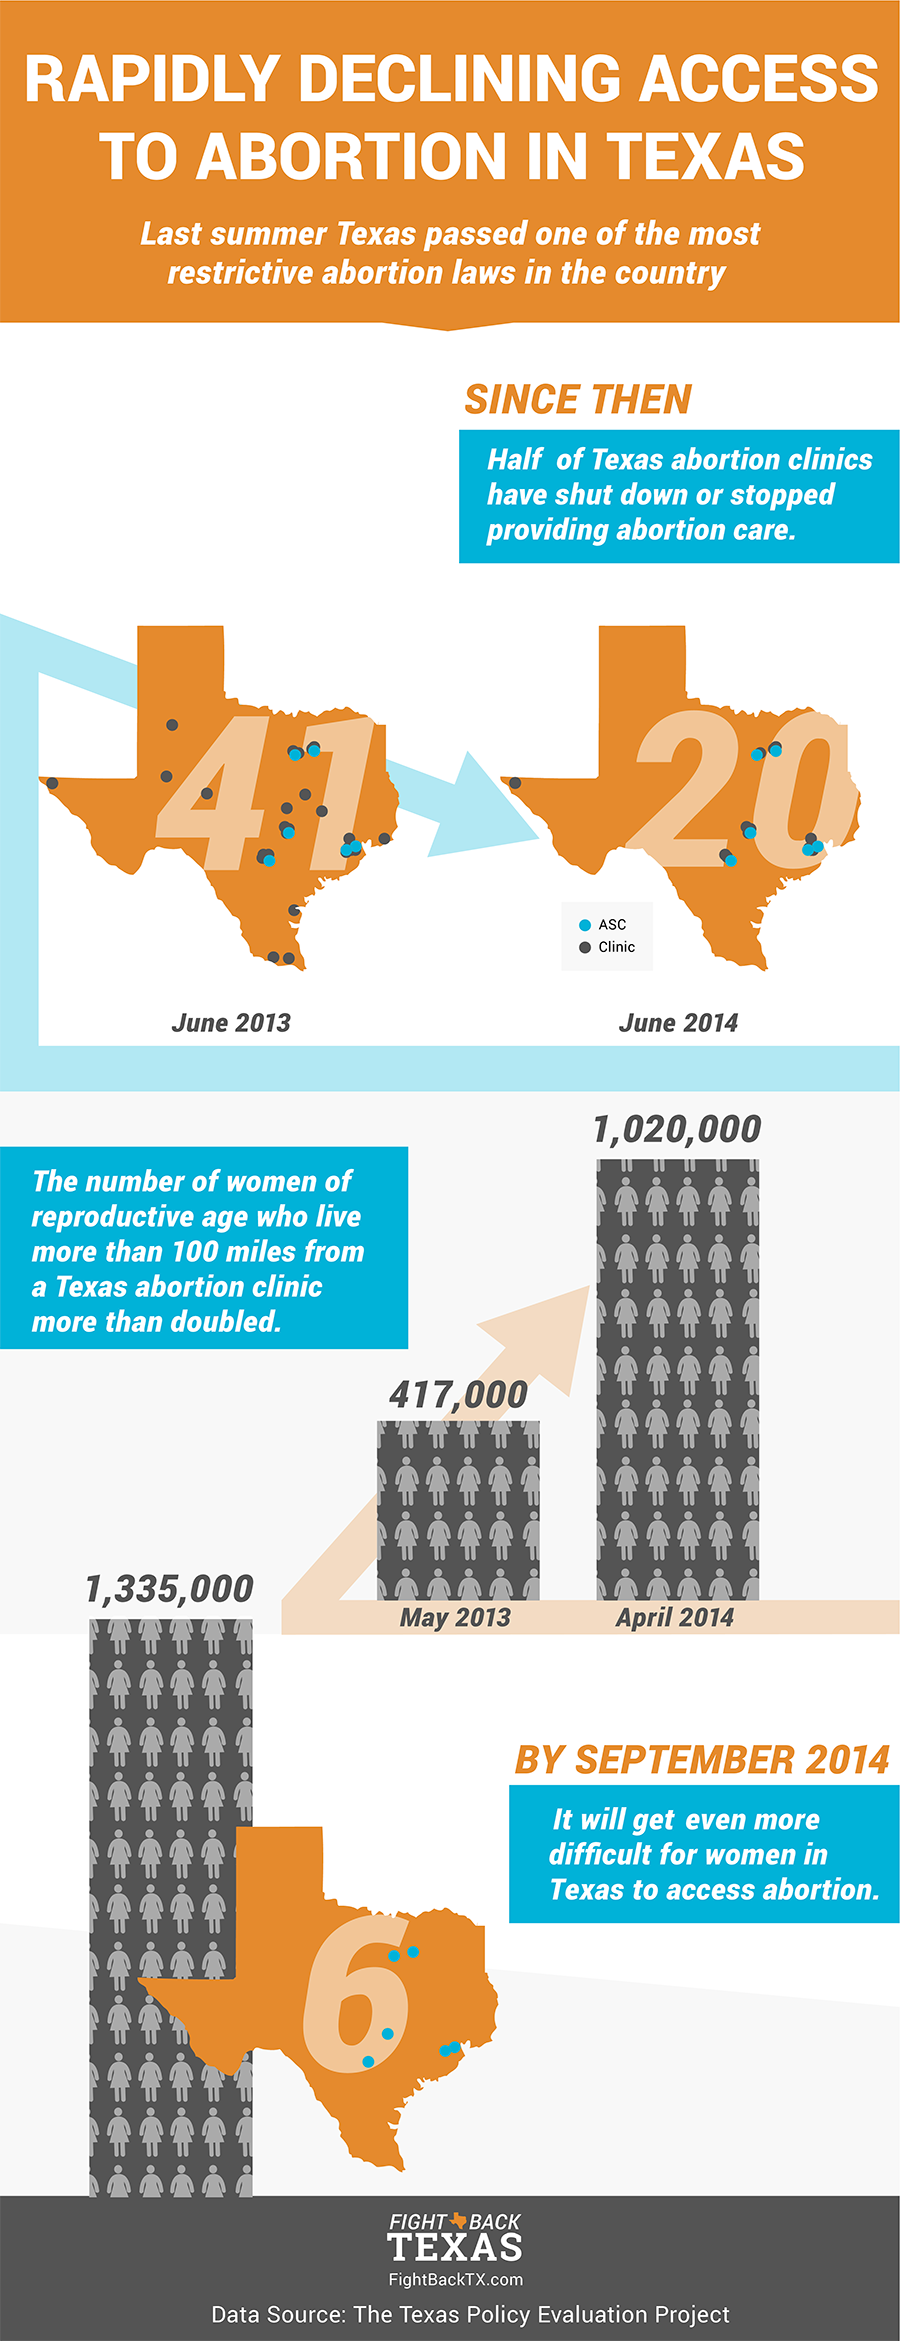 Abortion Closures Infographic